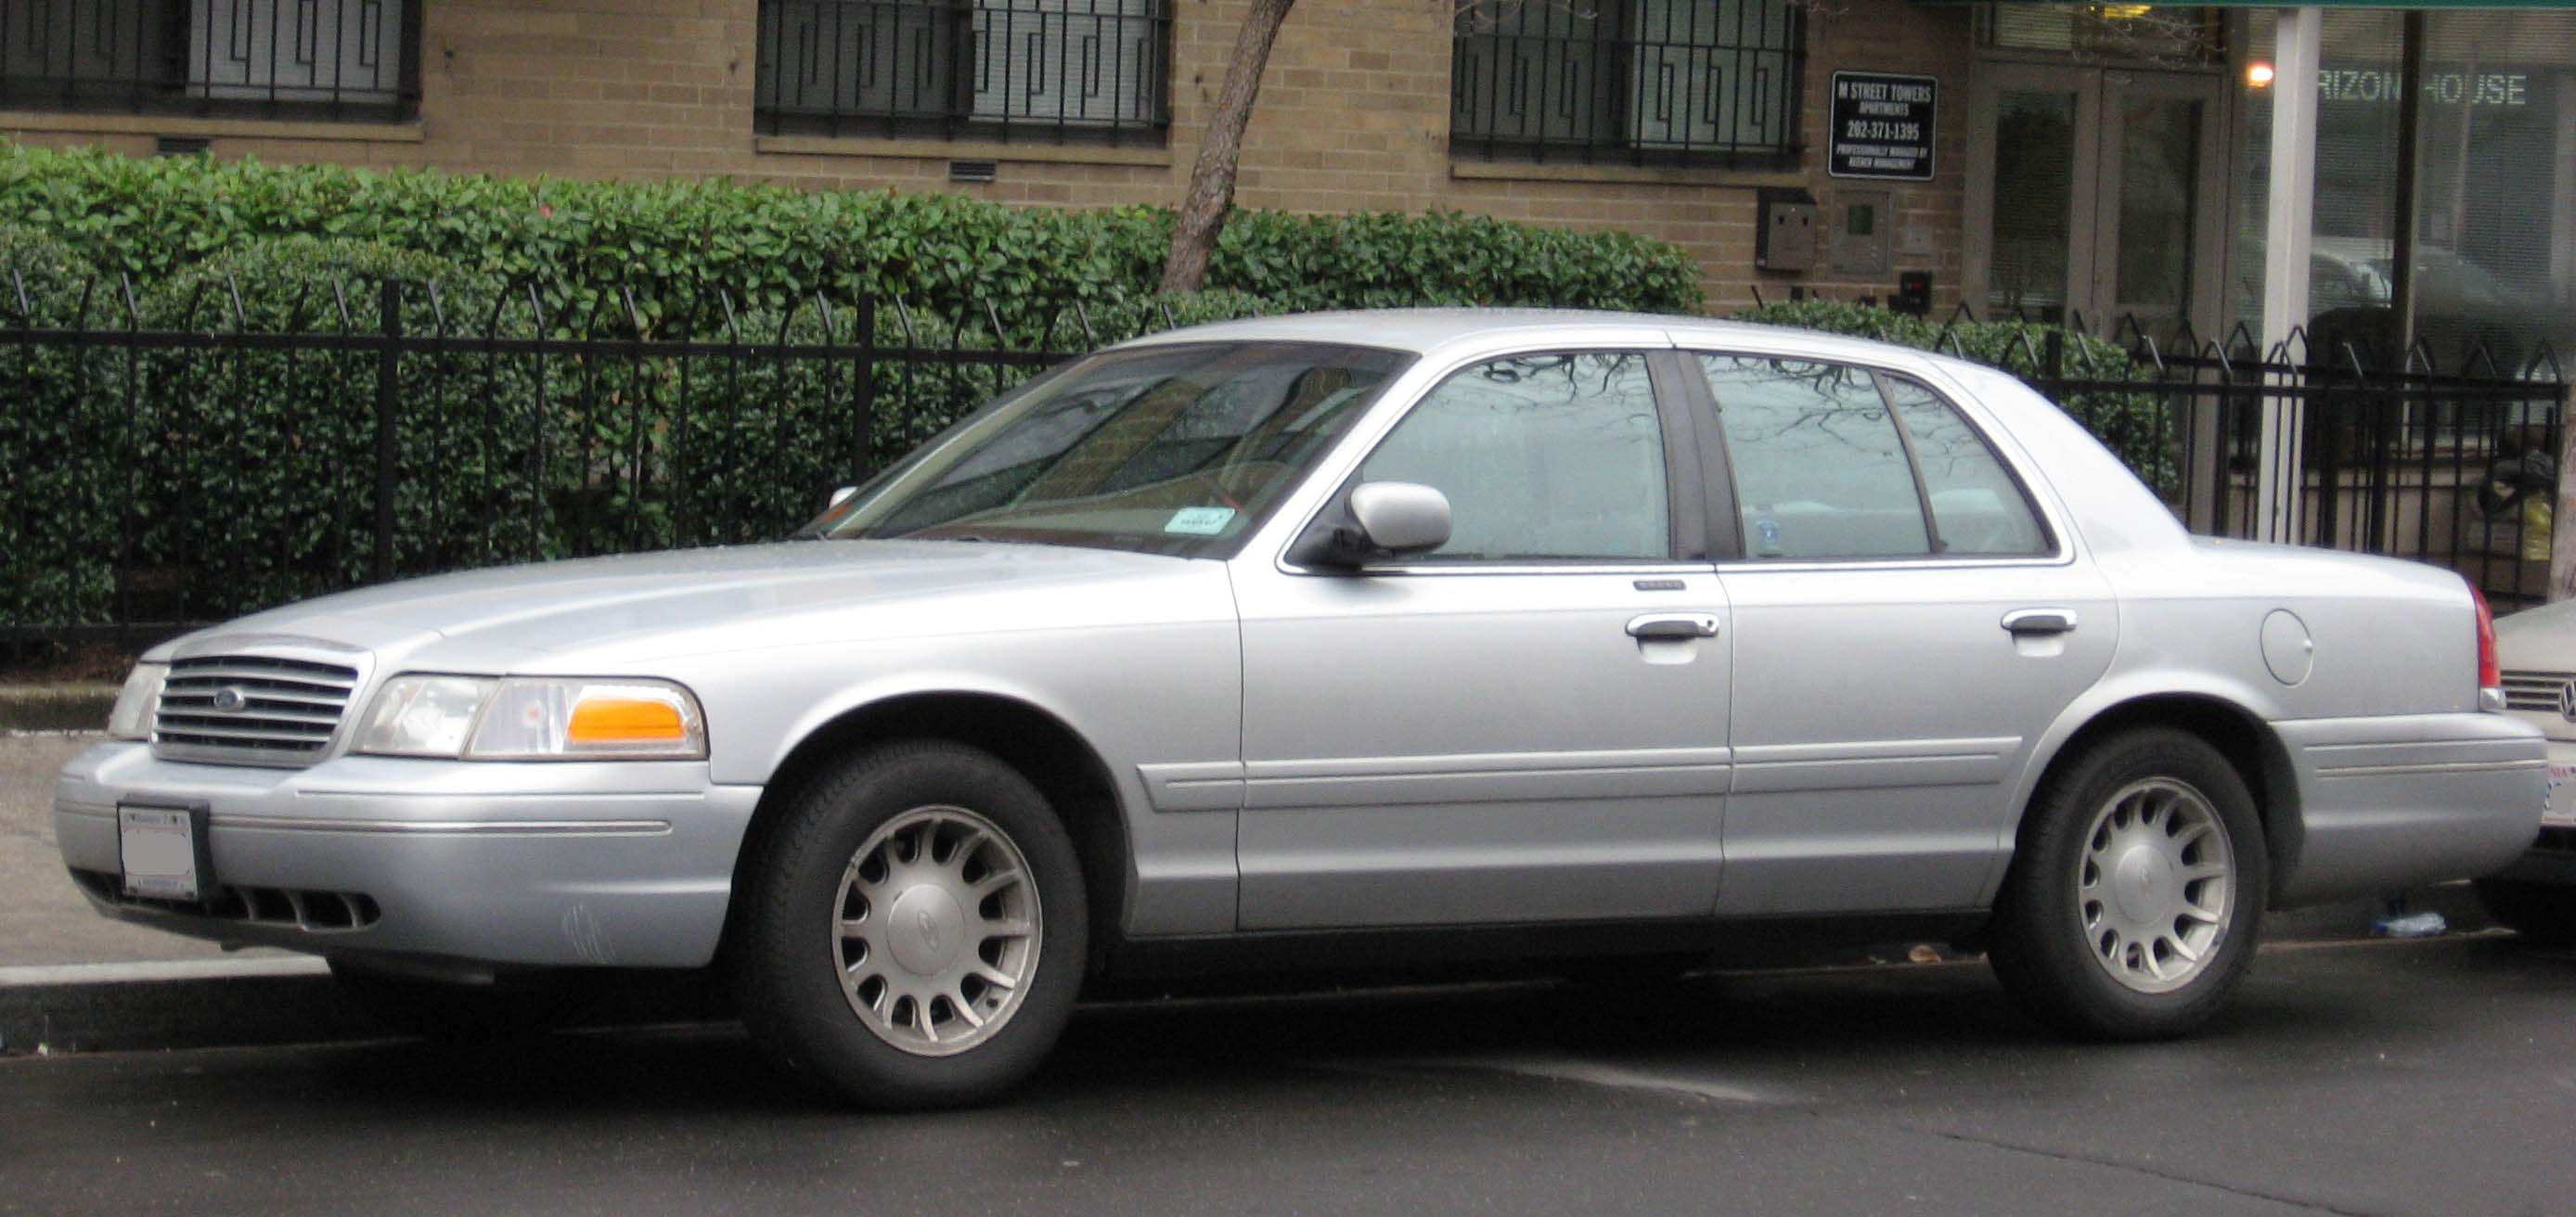 Ford Crown Victoria #5